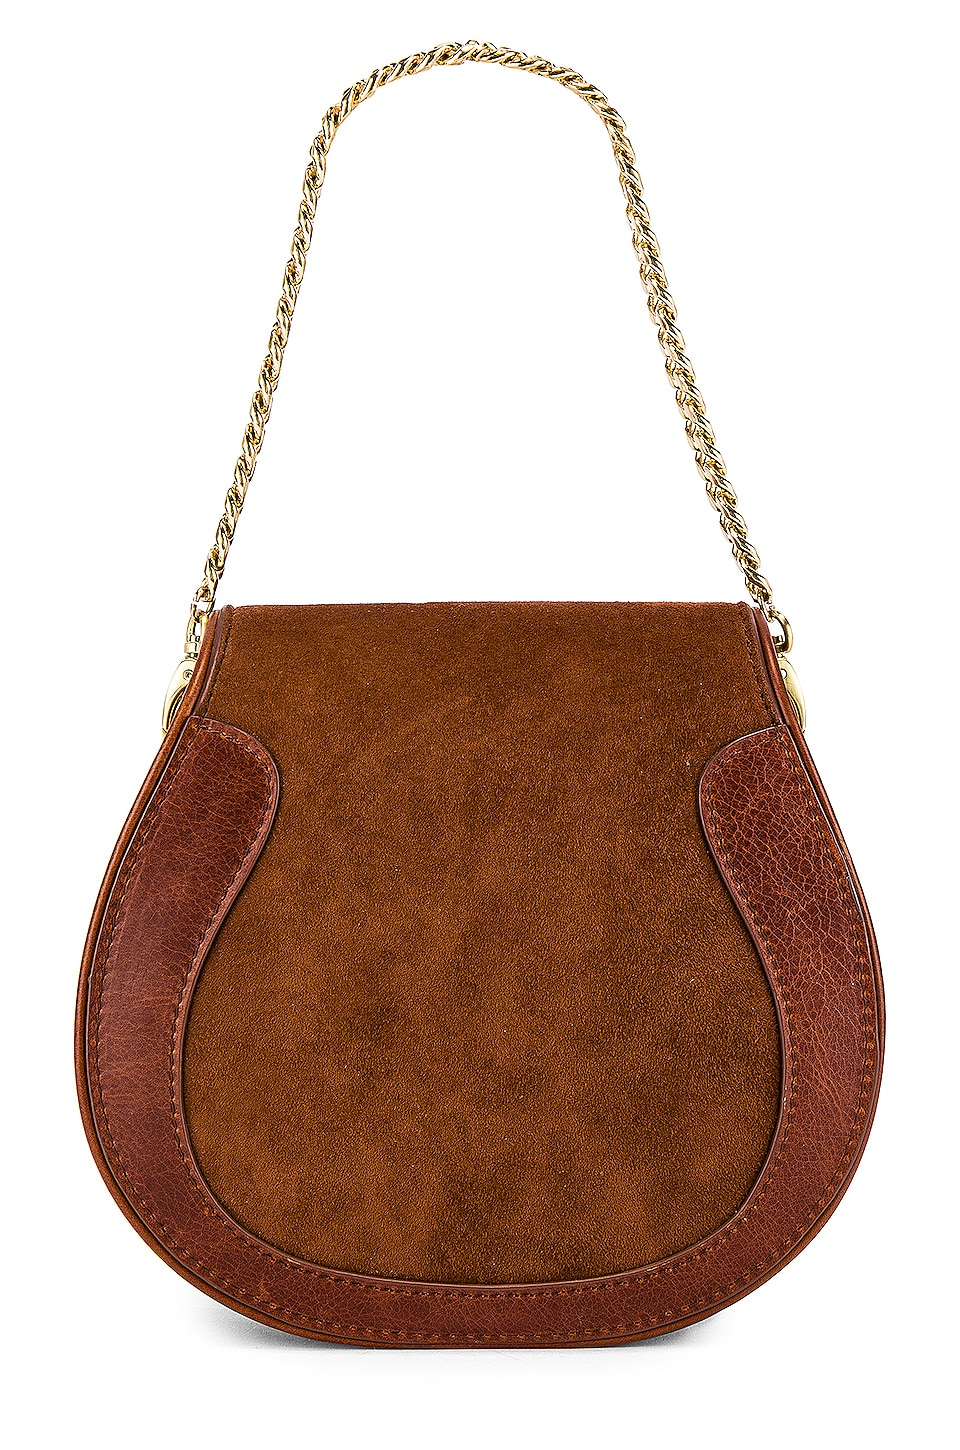 Sancia Ellea Mini Saddle in Vintage Tan